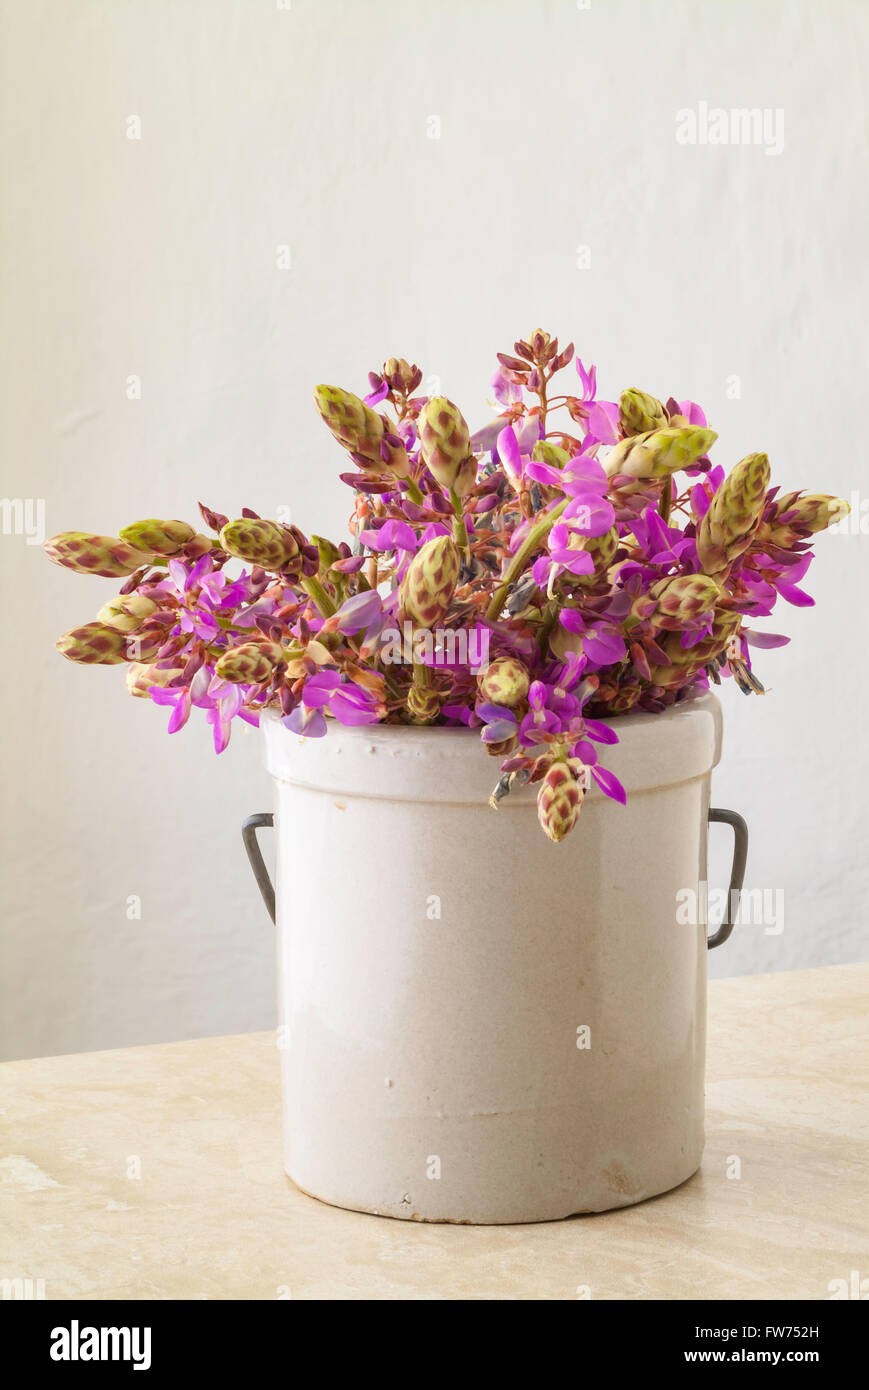 Wild purple flowers In a Stoneware Jar on table top with copy space. - Stock Image